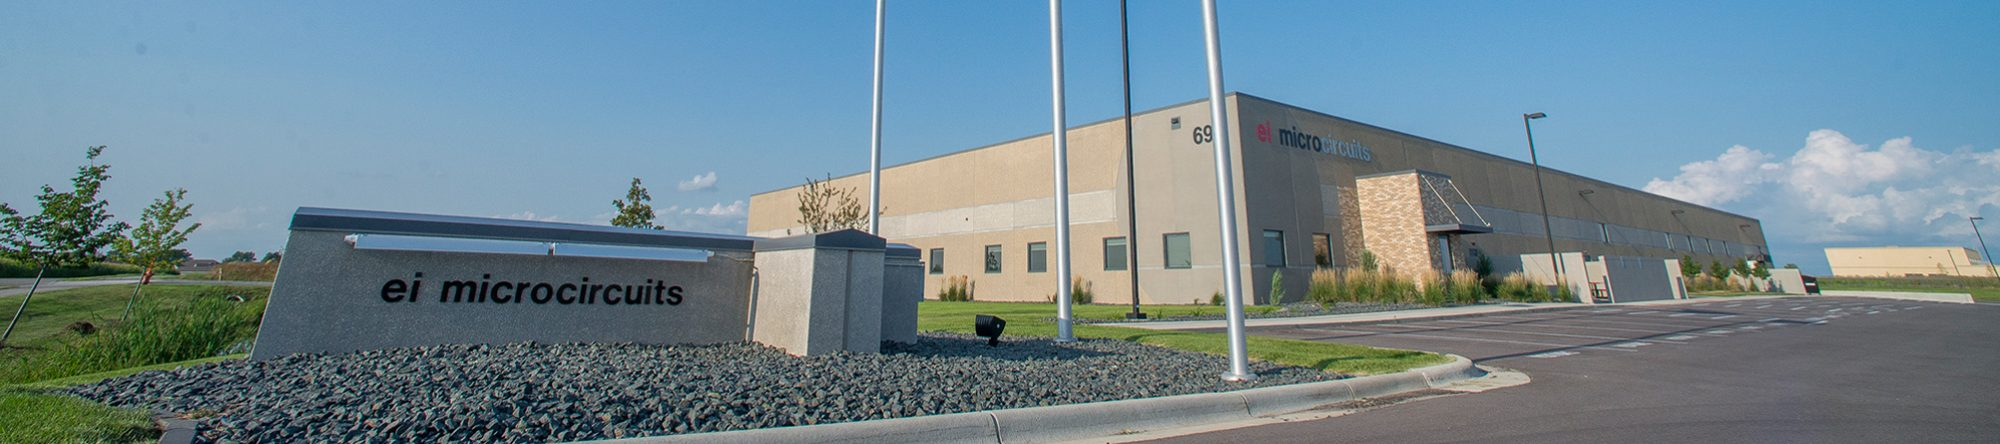 EI Microcircuits Manufacturing Facility at Power Drive in Mankato, MN